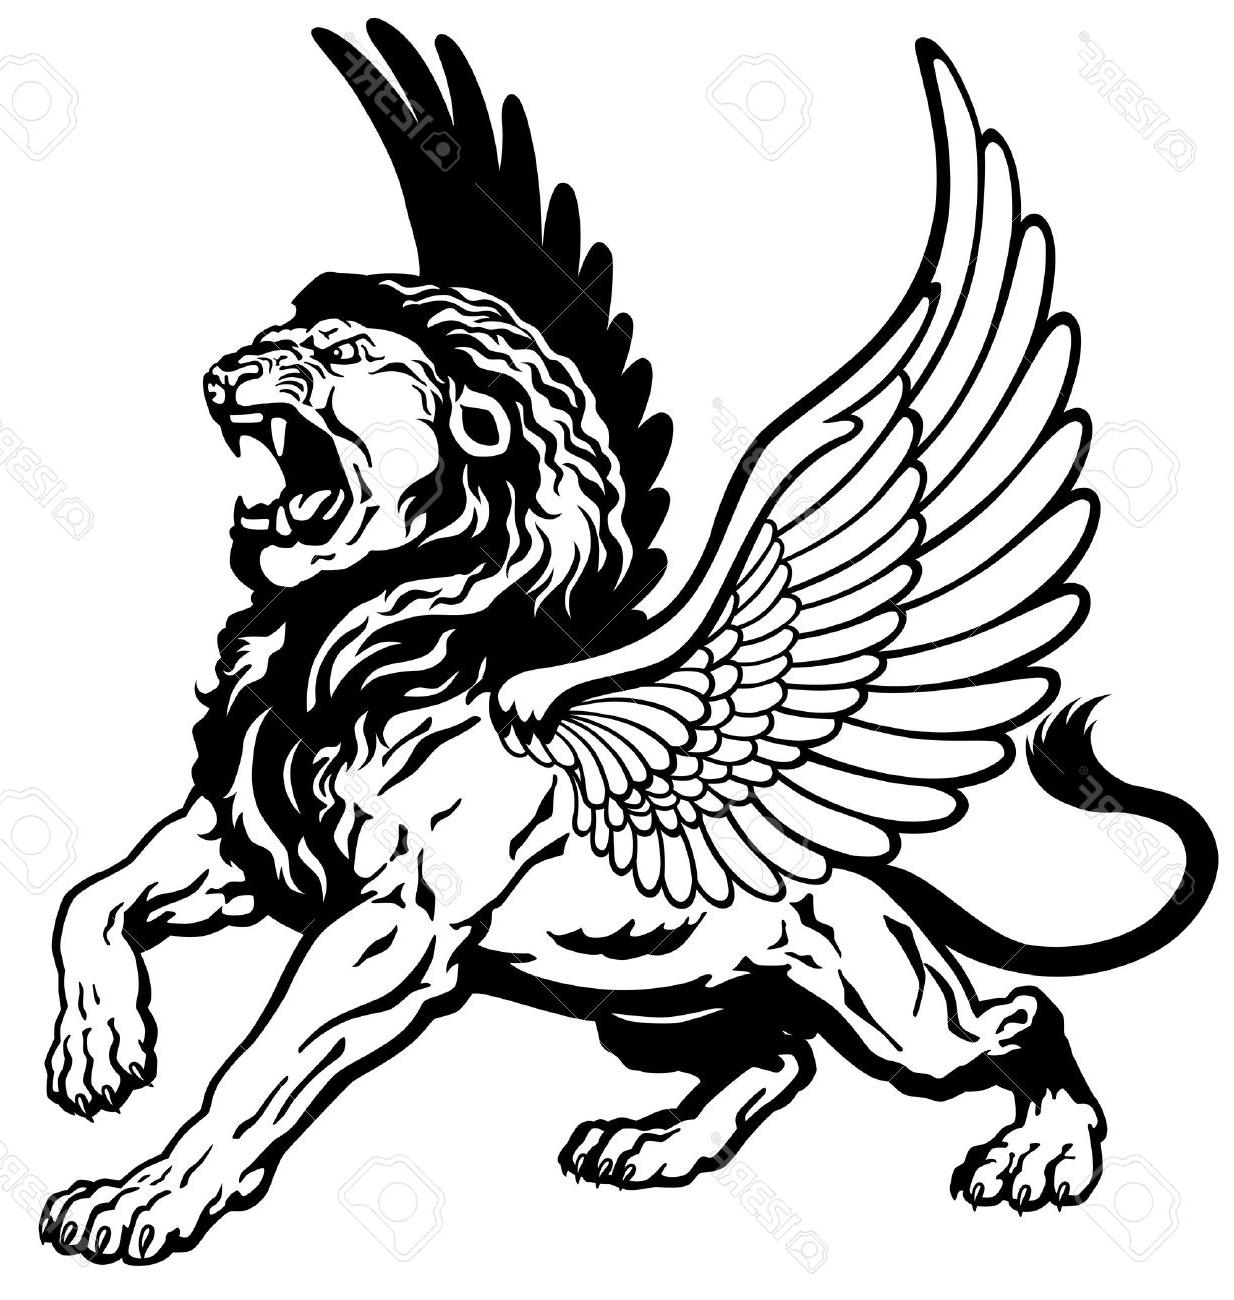 1234x1300 Top 10 Roaring Winged Lion Black And White Tattoo Image Stock